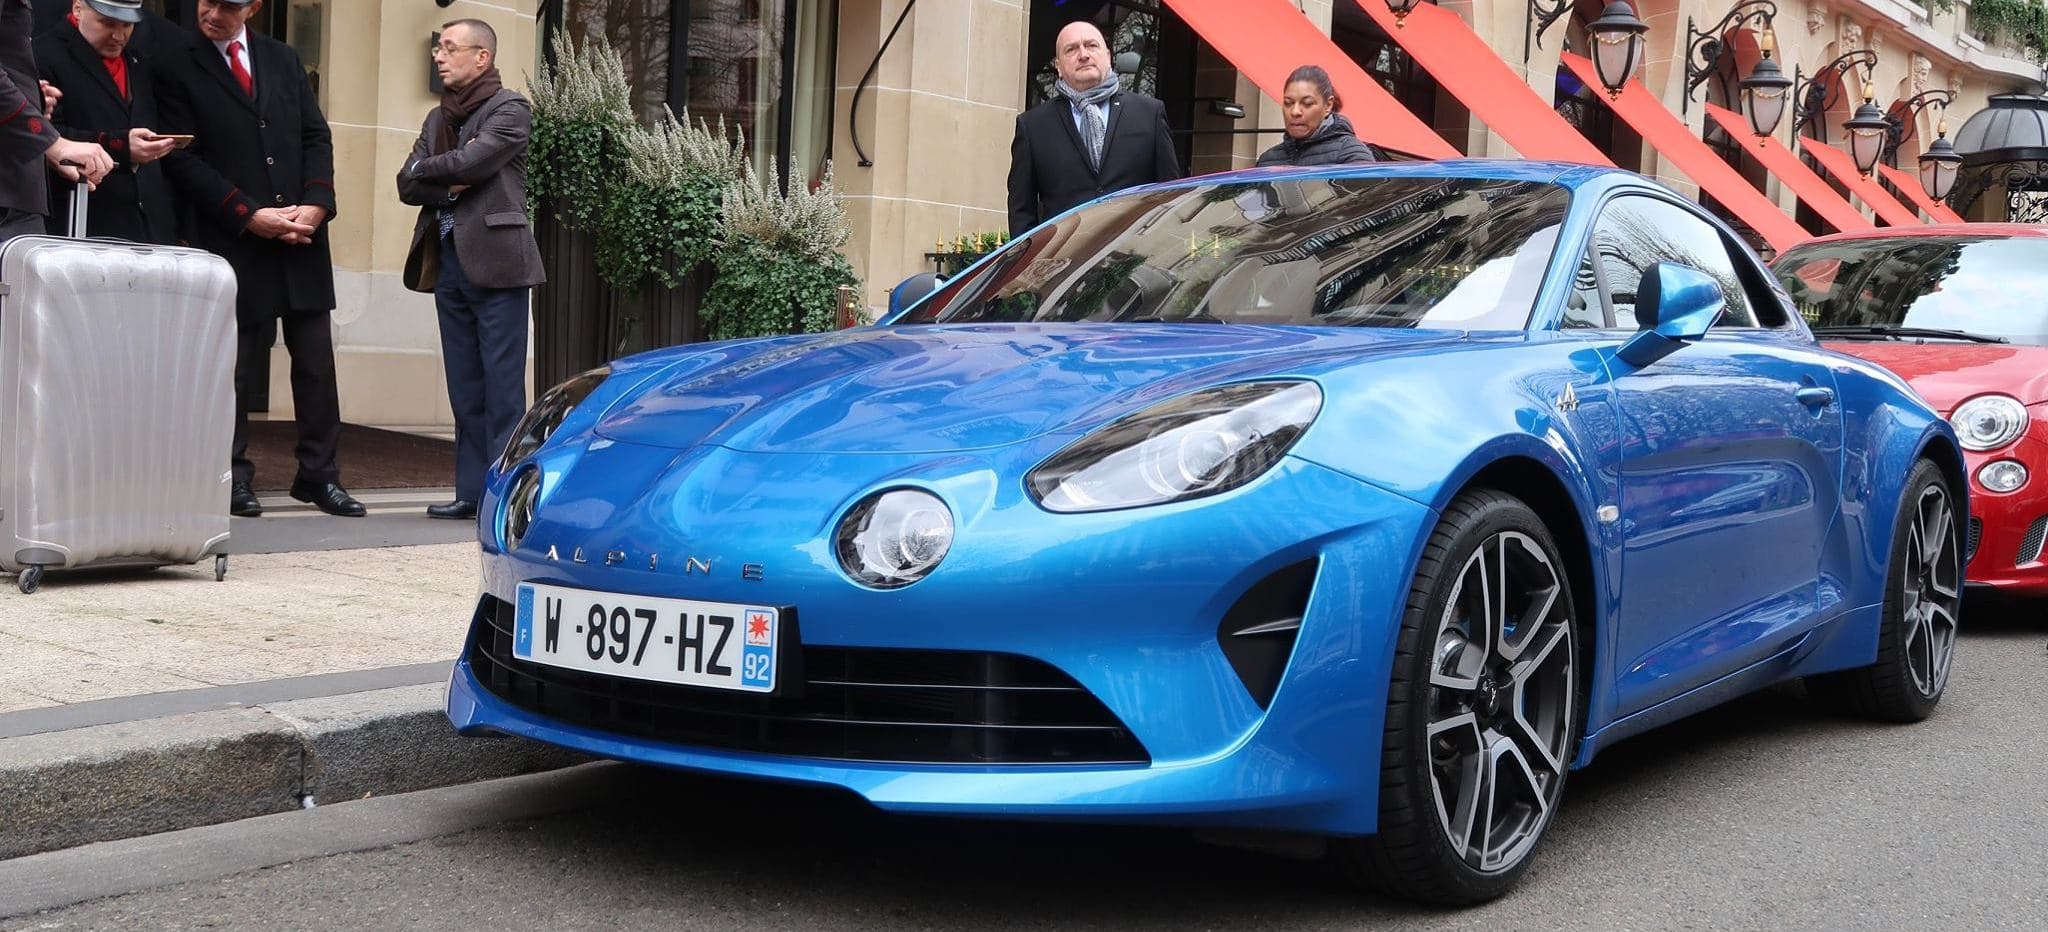 Alain Ducasse rencontre l'Alpine A110 à l'occasion de Good France !